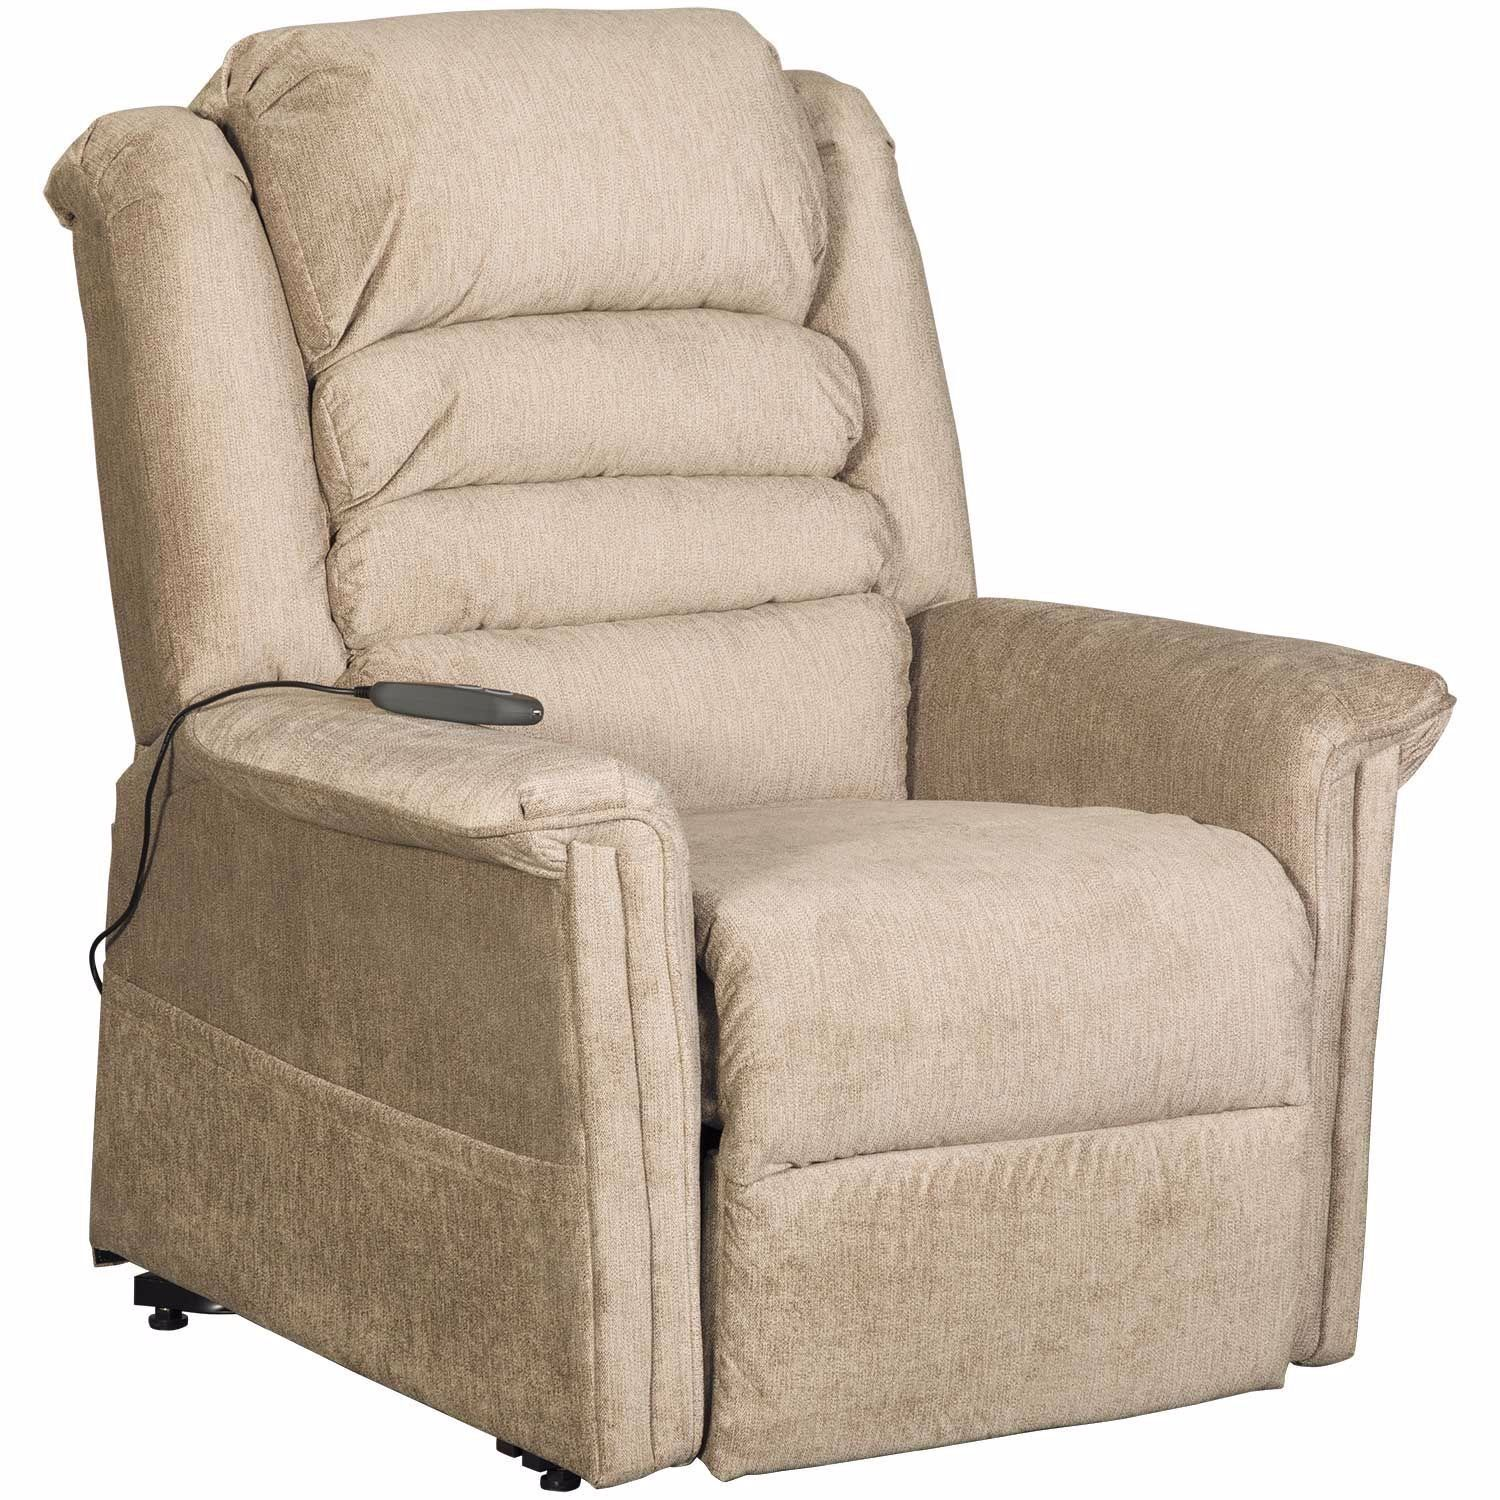 Invincible Power Lift Chair Chair Leather Recliner Chair Leather Recliner